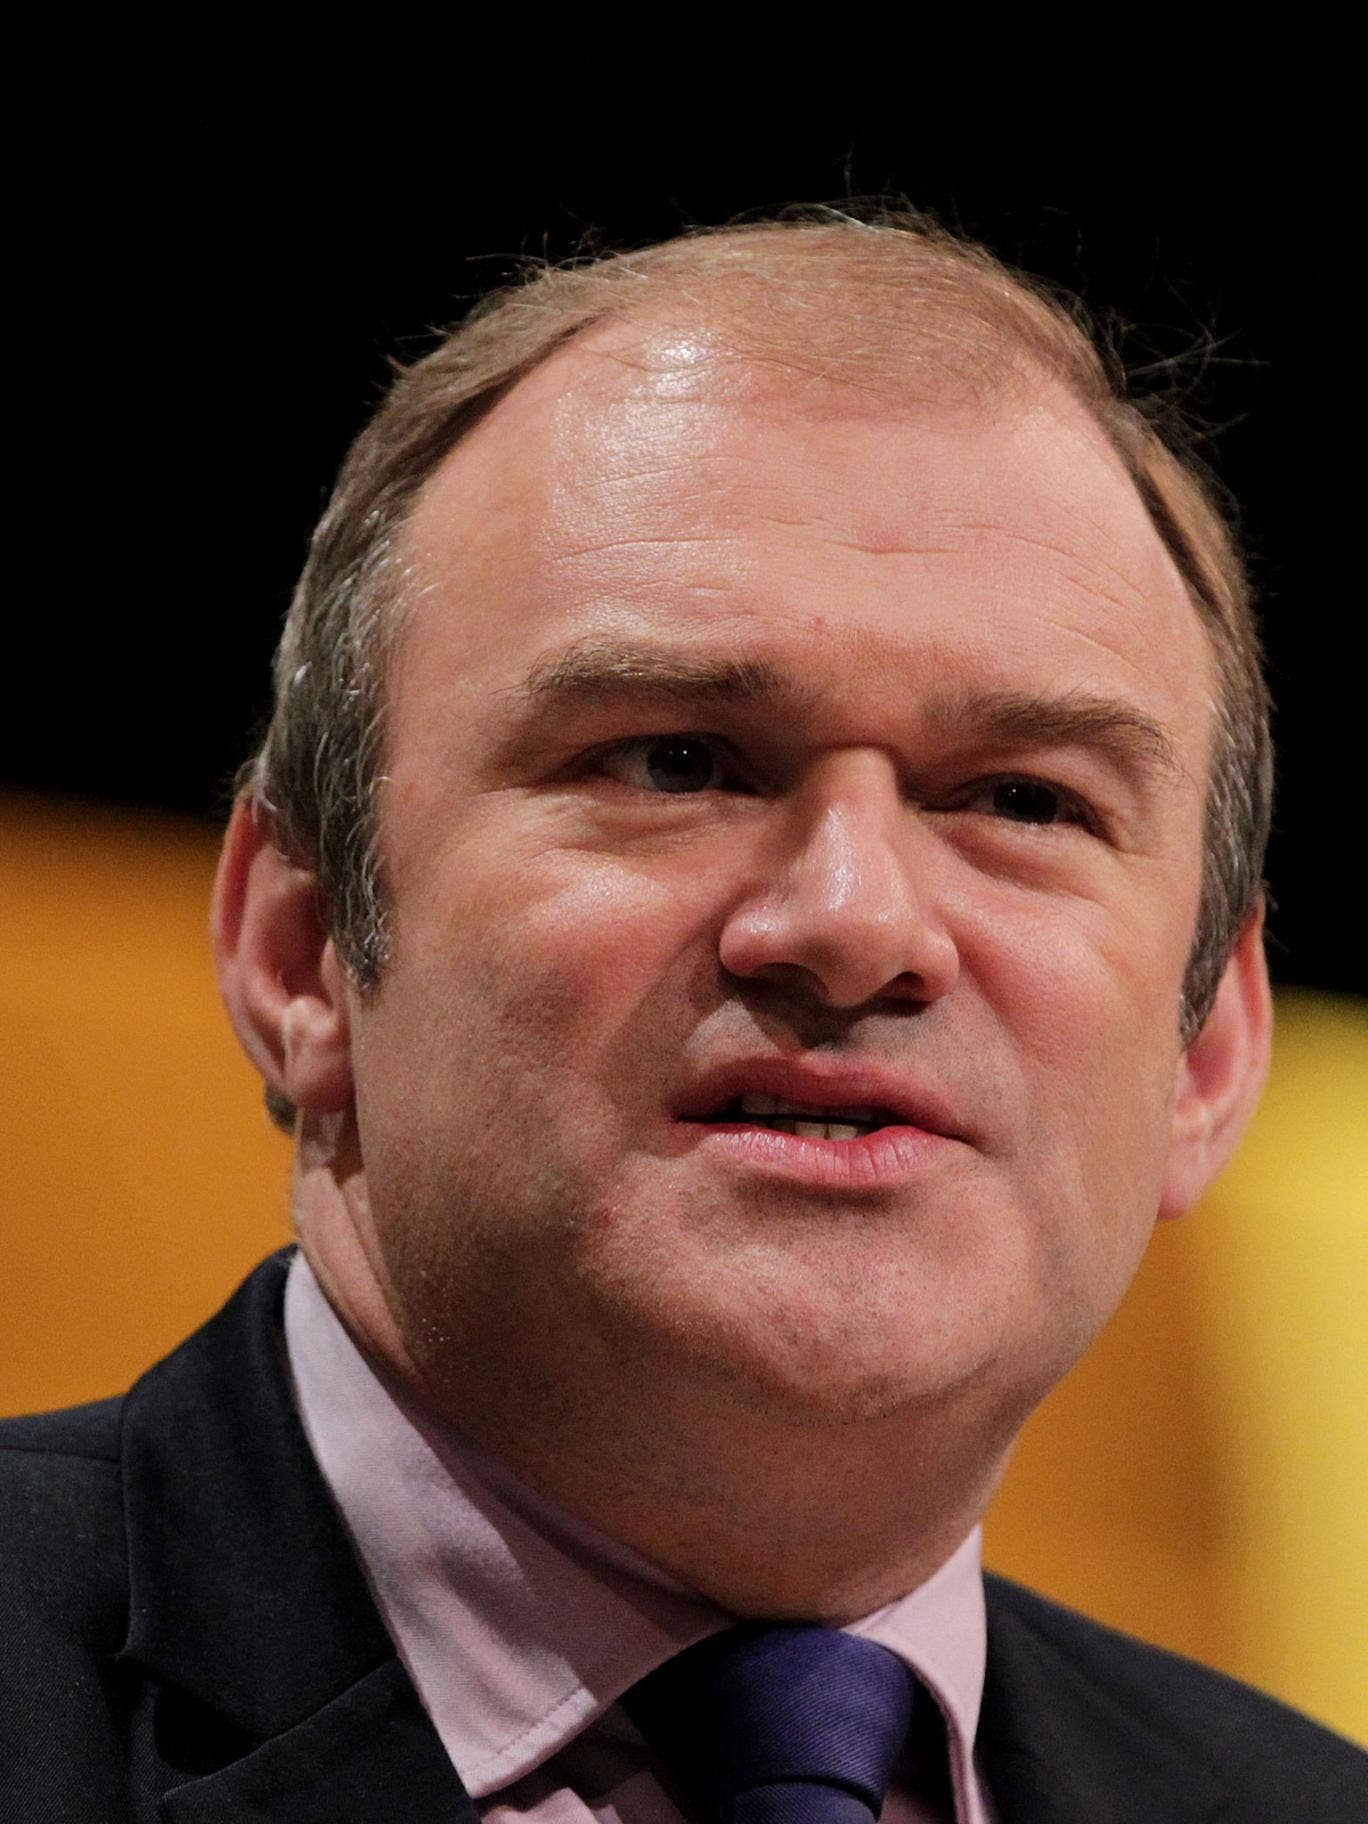 Ed Davey says 'The new energy policy will account for 17 per cent of the increase in electricity unit prices, which will not affect household bills'